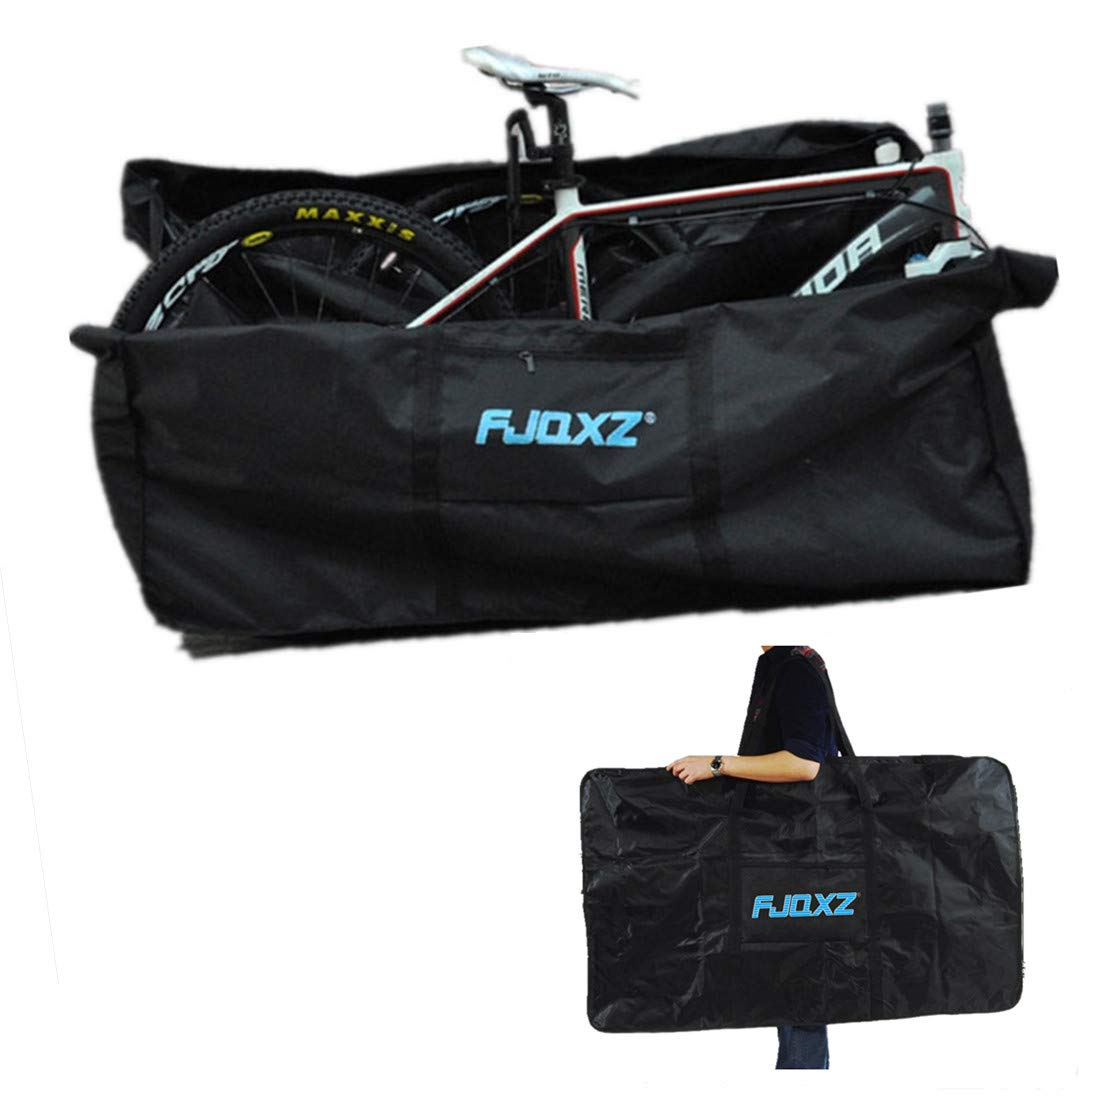 Kisshome Folding Bike Bag Thick Bicycle Carry Bag,Bike Transport Case for Transport,Air Travel,Shipping 26 inch to 29 inch